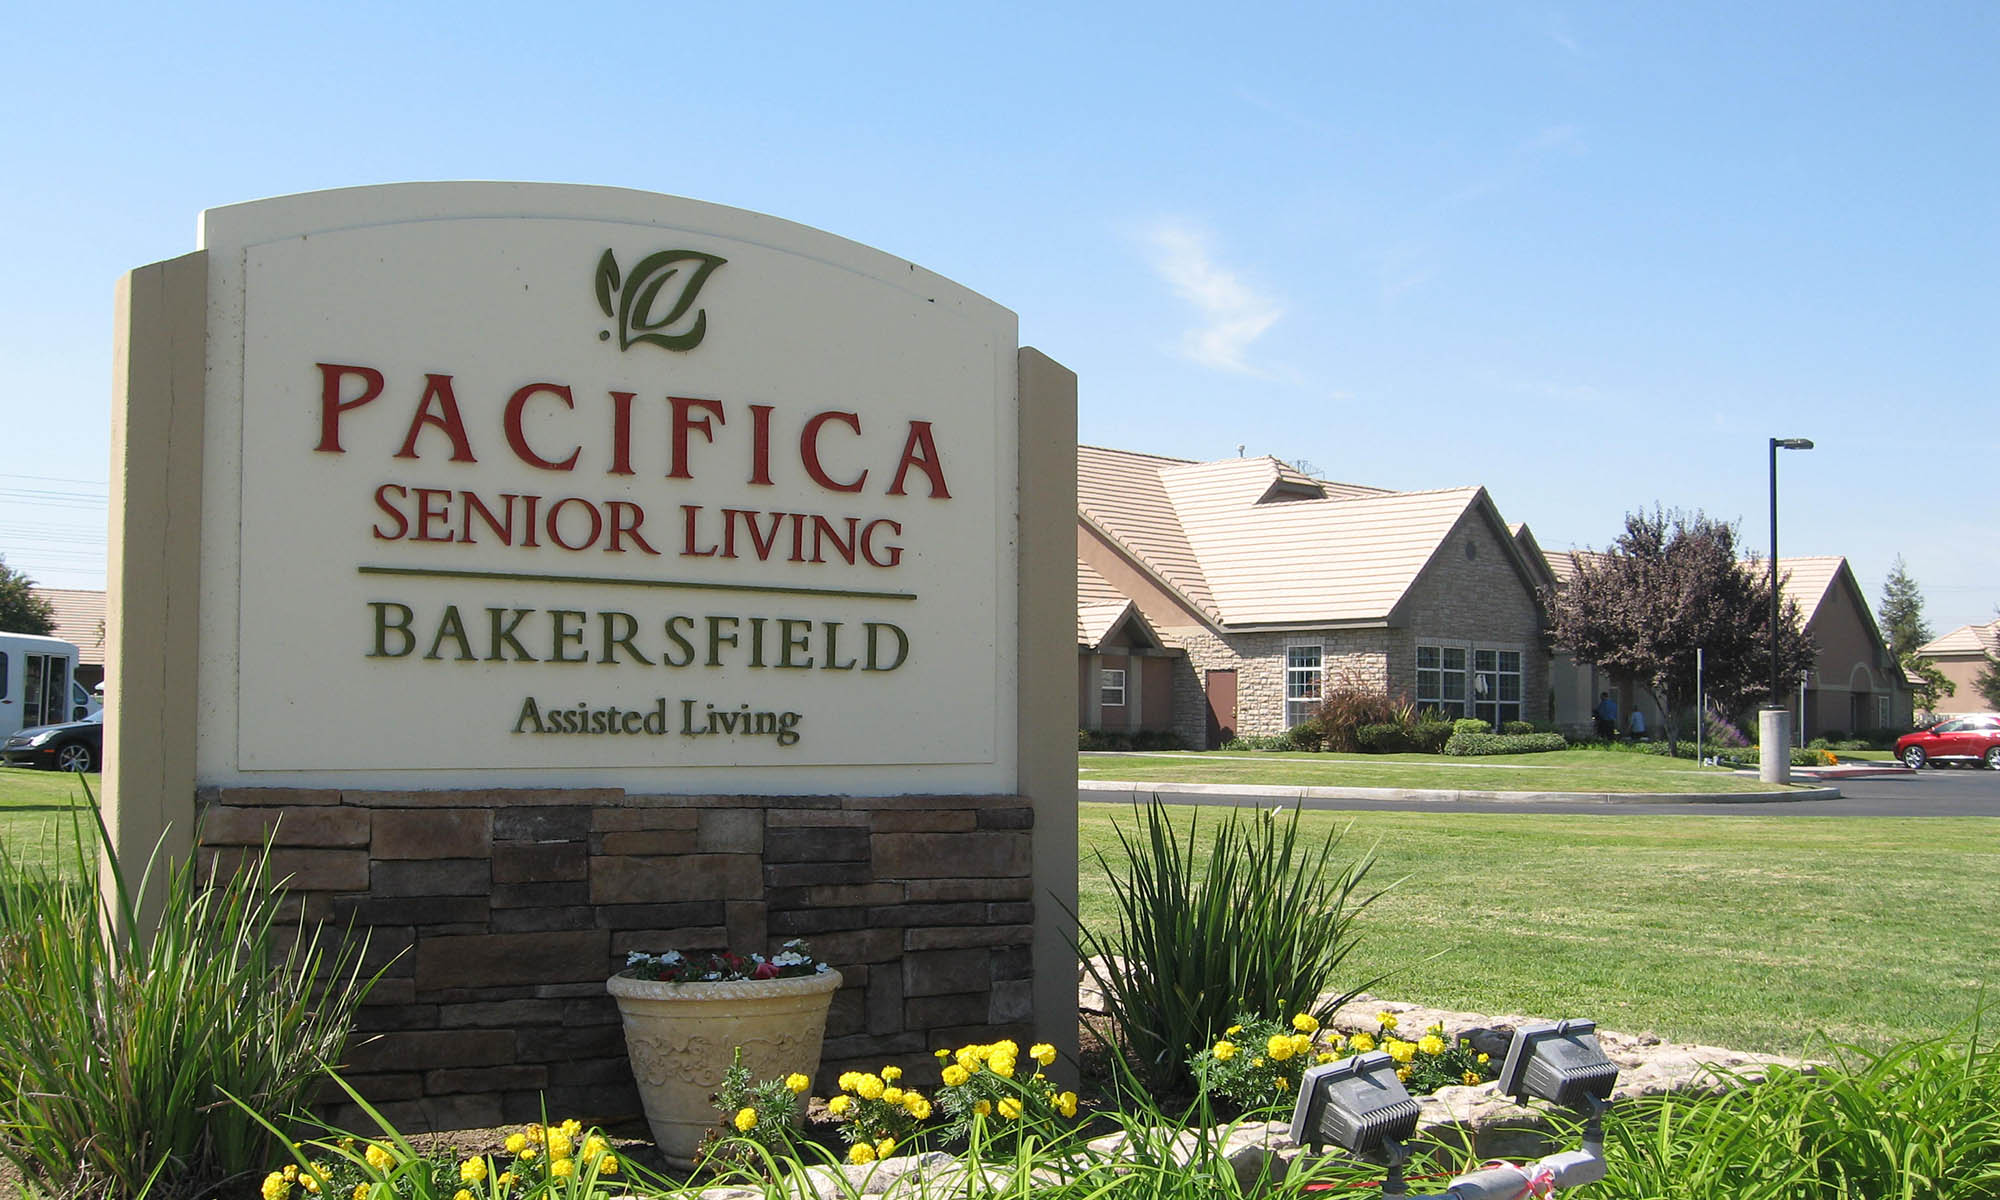 Welcome to Pacifica Senior Living Bakersfield